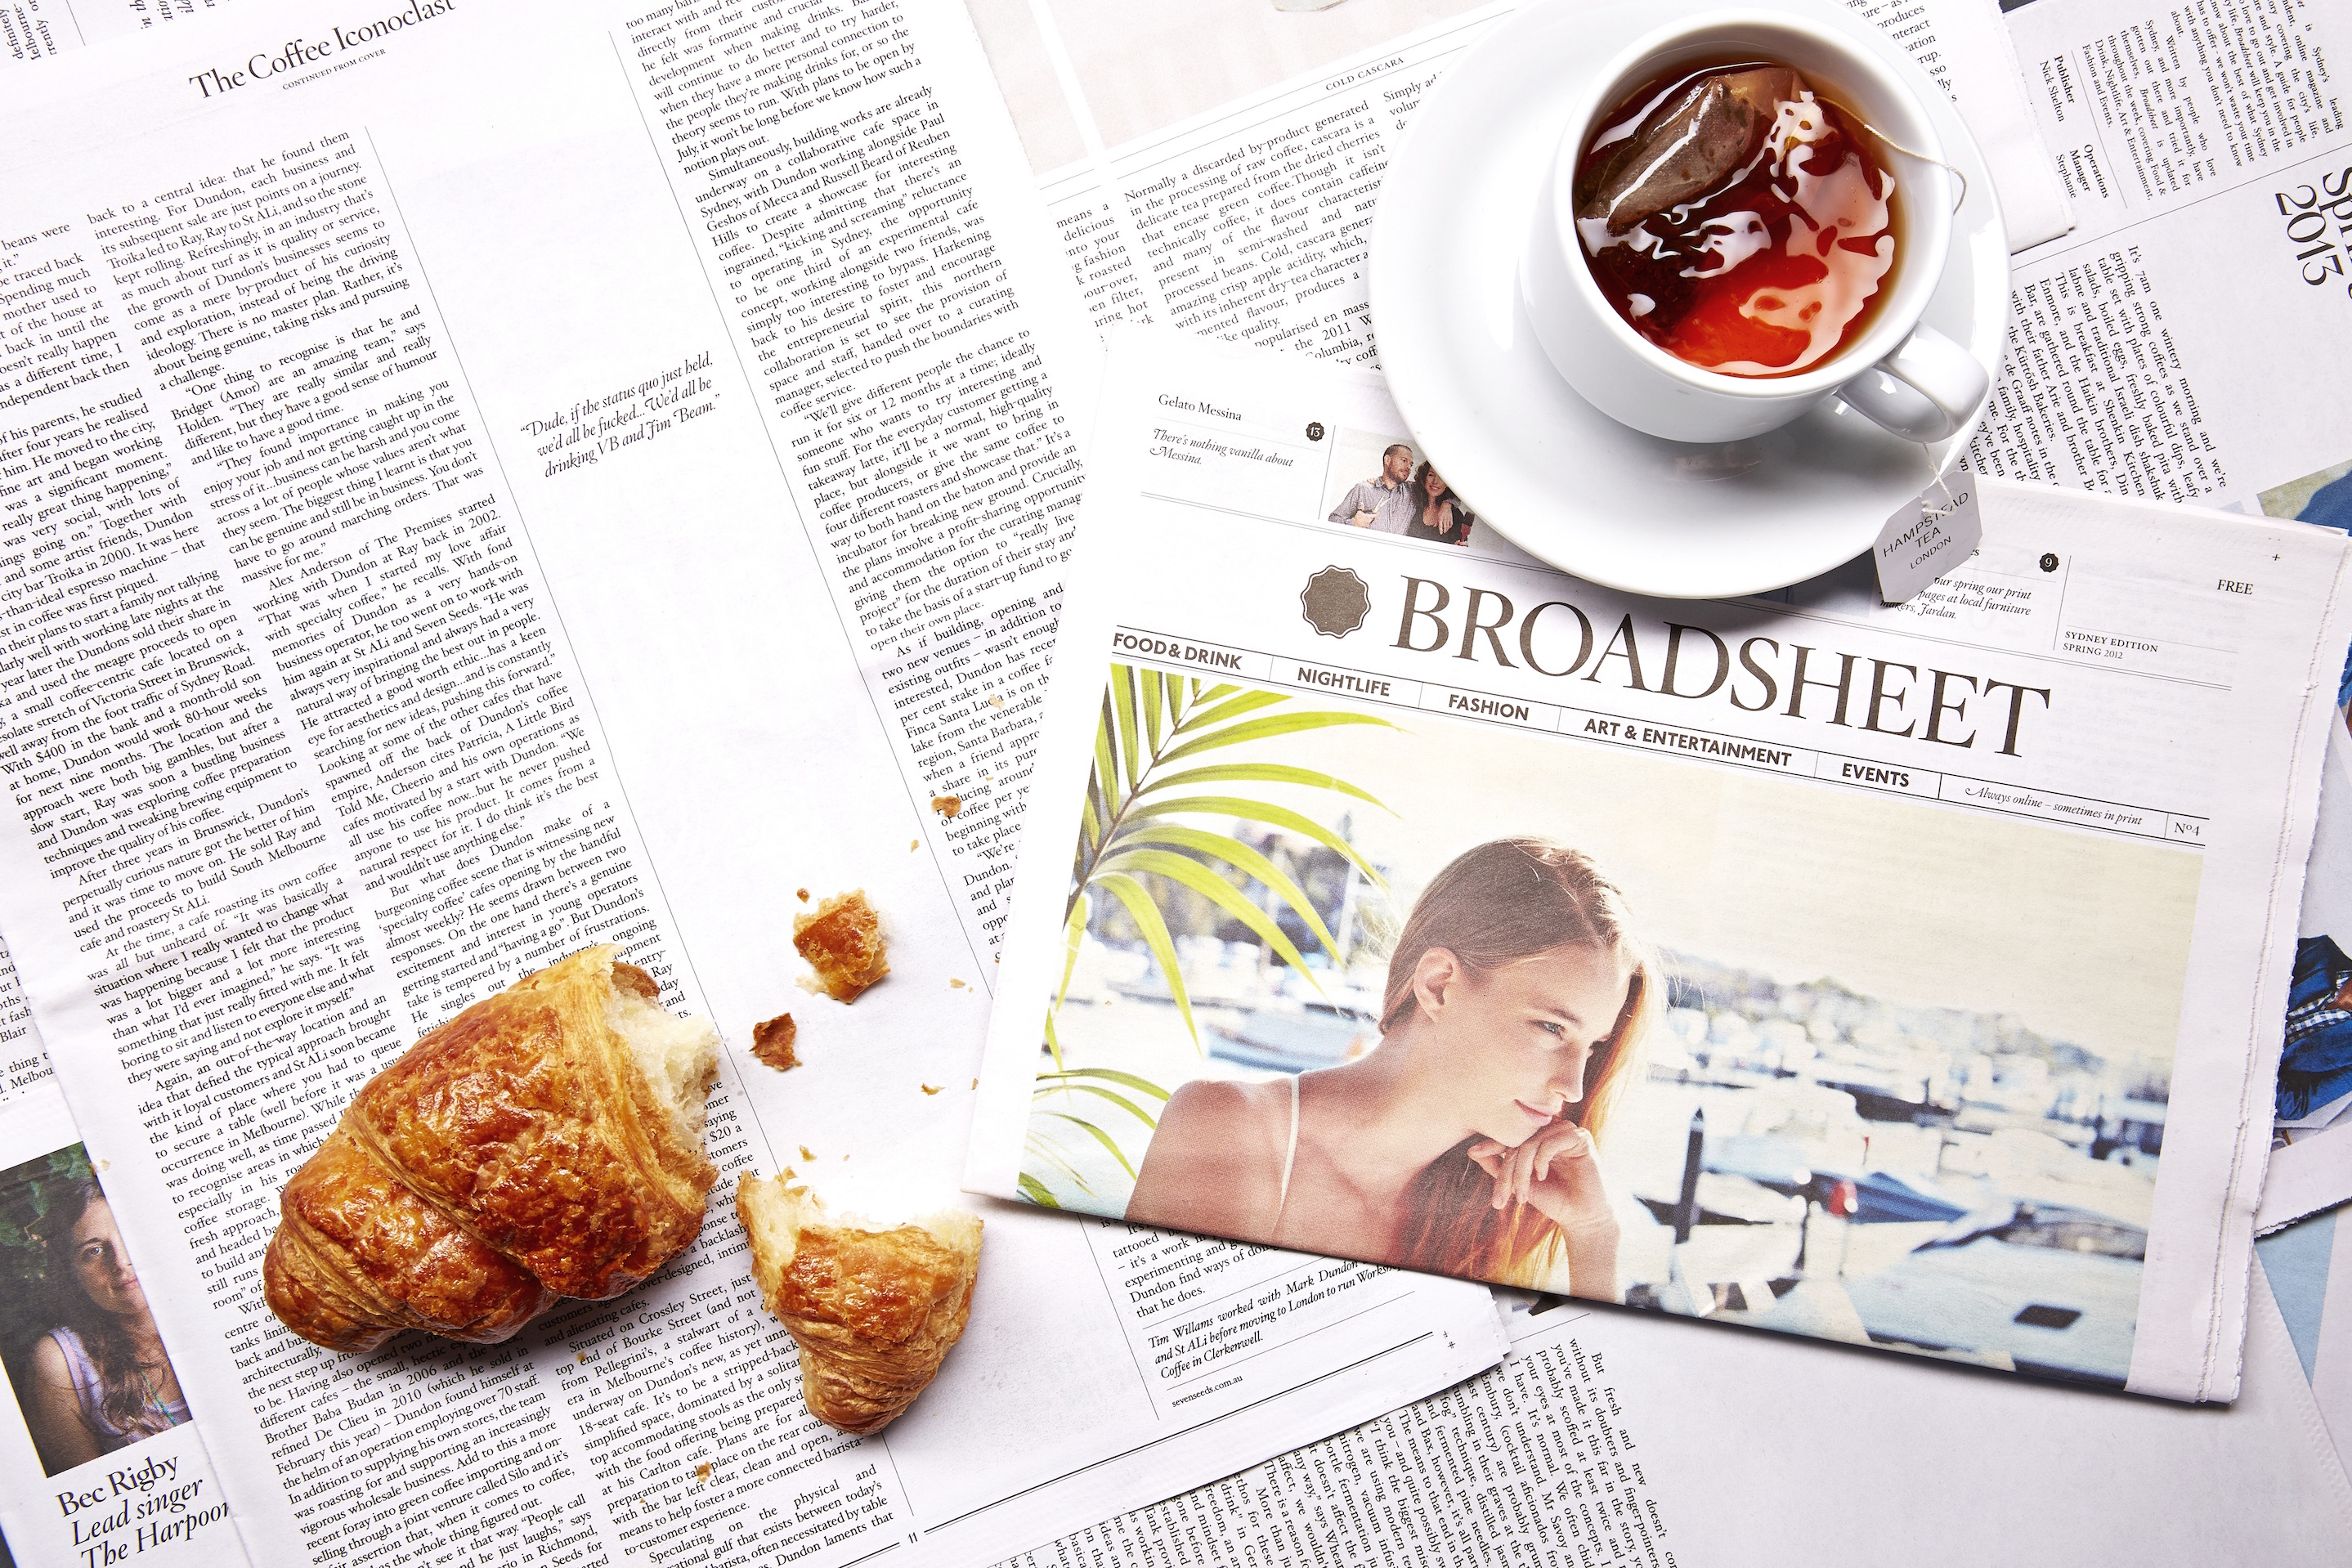 October 2012 – Broadsheet Sydney publishes its fourth print issue | Photography by Daniel Herrmann-Zoll